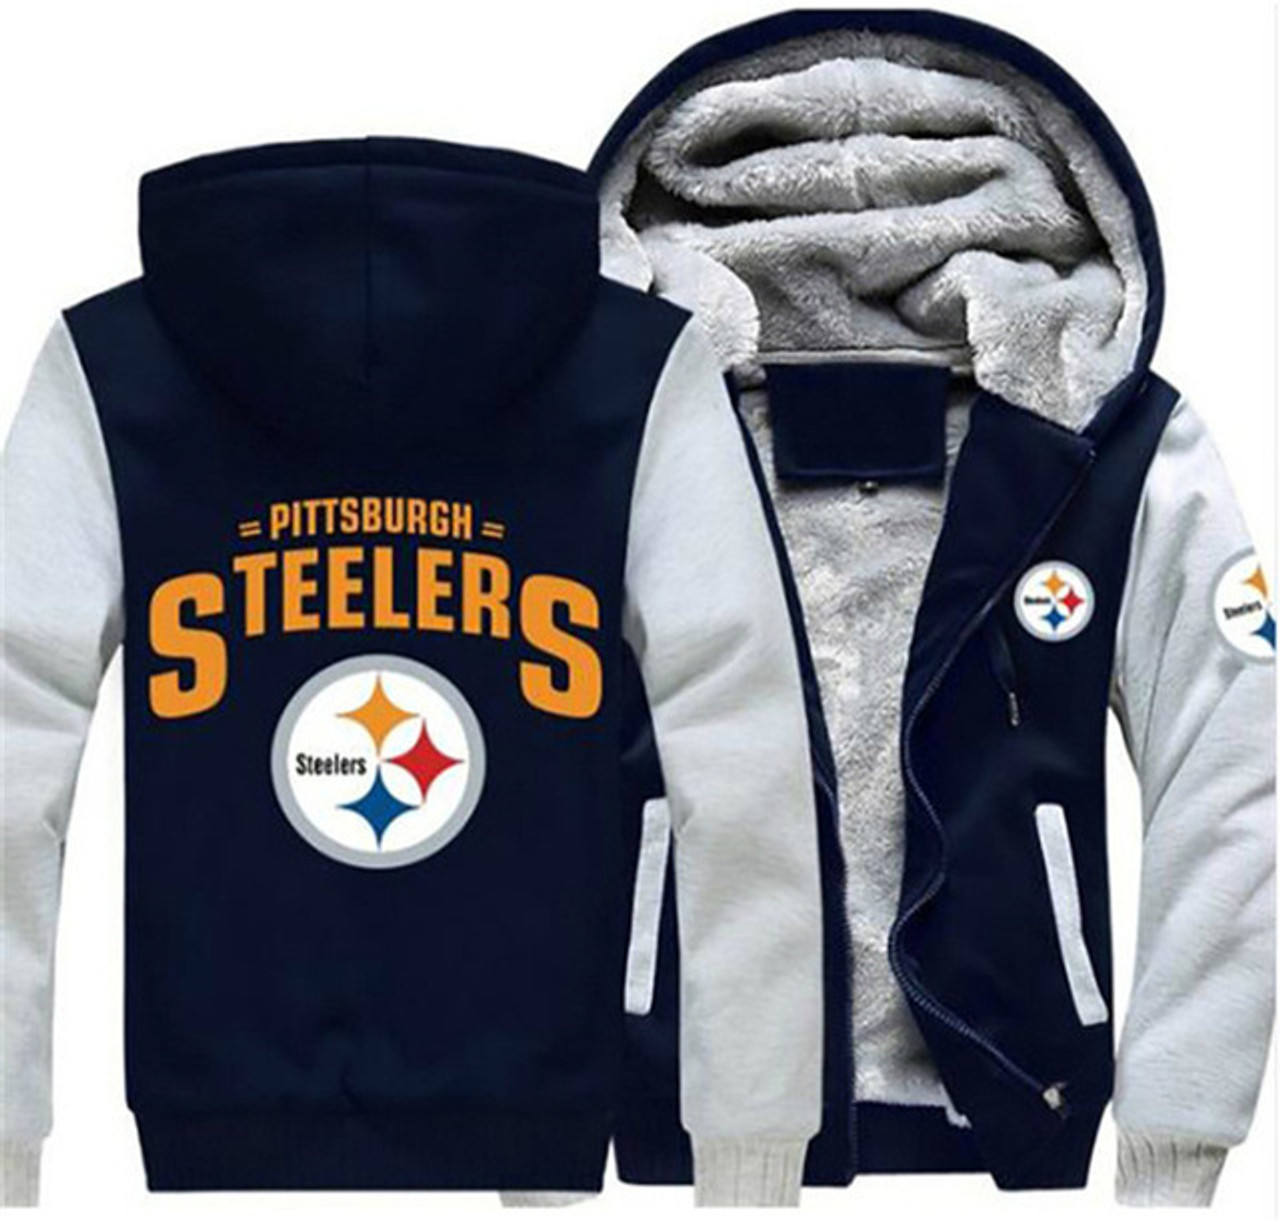 new style 63929 73f94 **(OFFICIAL-N.F.L.PITTSBURGH-STEELERS/TRENDY-NEW-TWO-TONE-STYLE,SOFT-FLEECE-LINED-TEAM-JACKETS/3-D-CUSTOM-DETAILED-GRAPHIC-PRINTED-DOUBLE-SIDED-OFFICI...